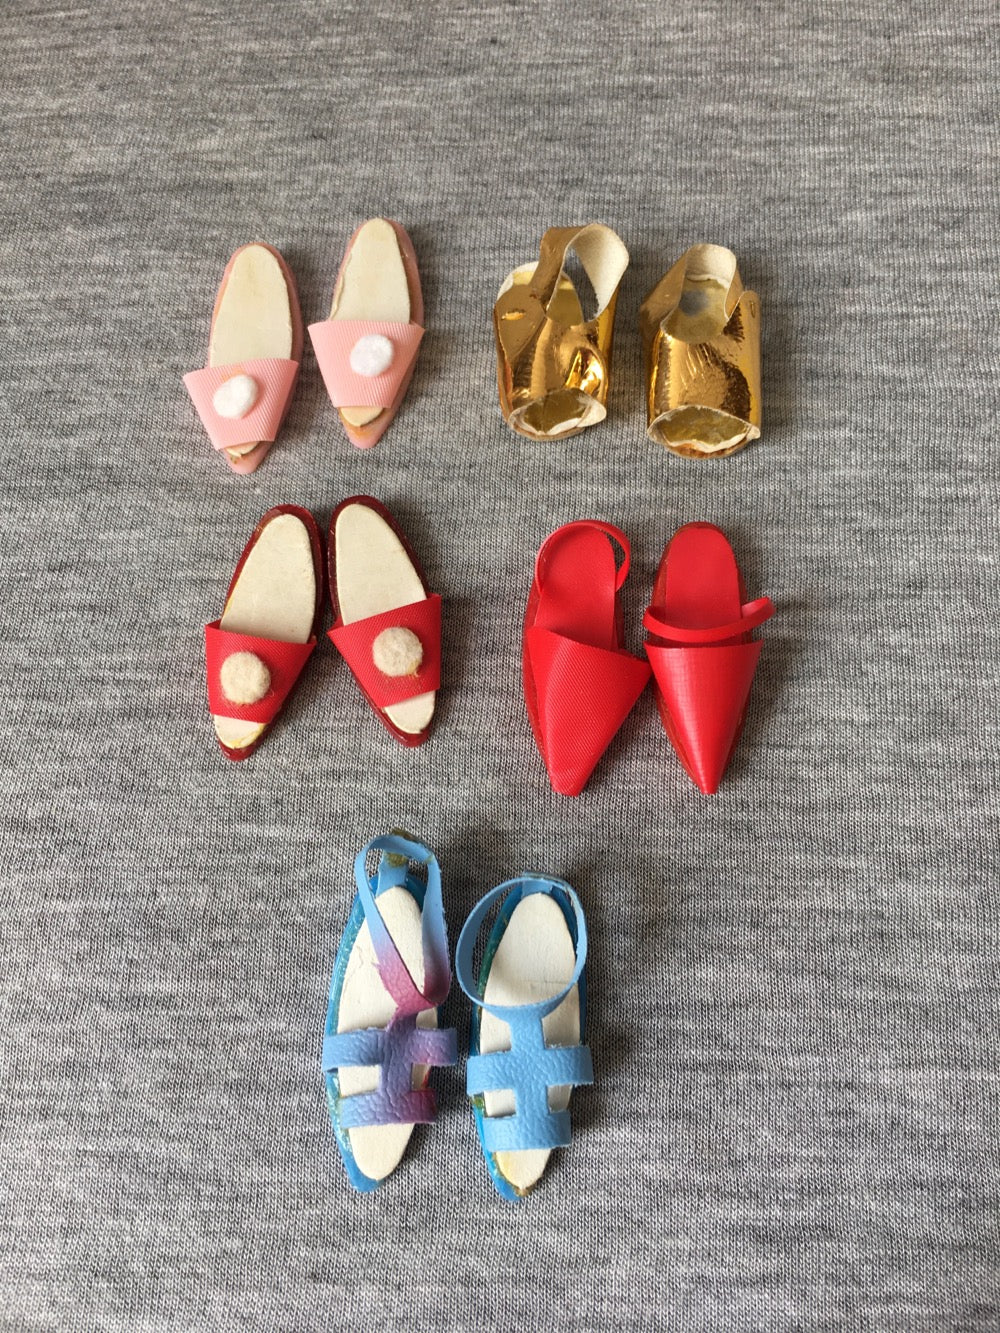 5 pairs of vintage Faerie Glen doll shoes